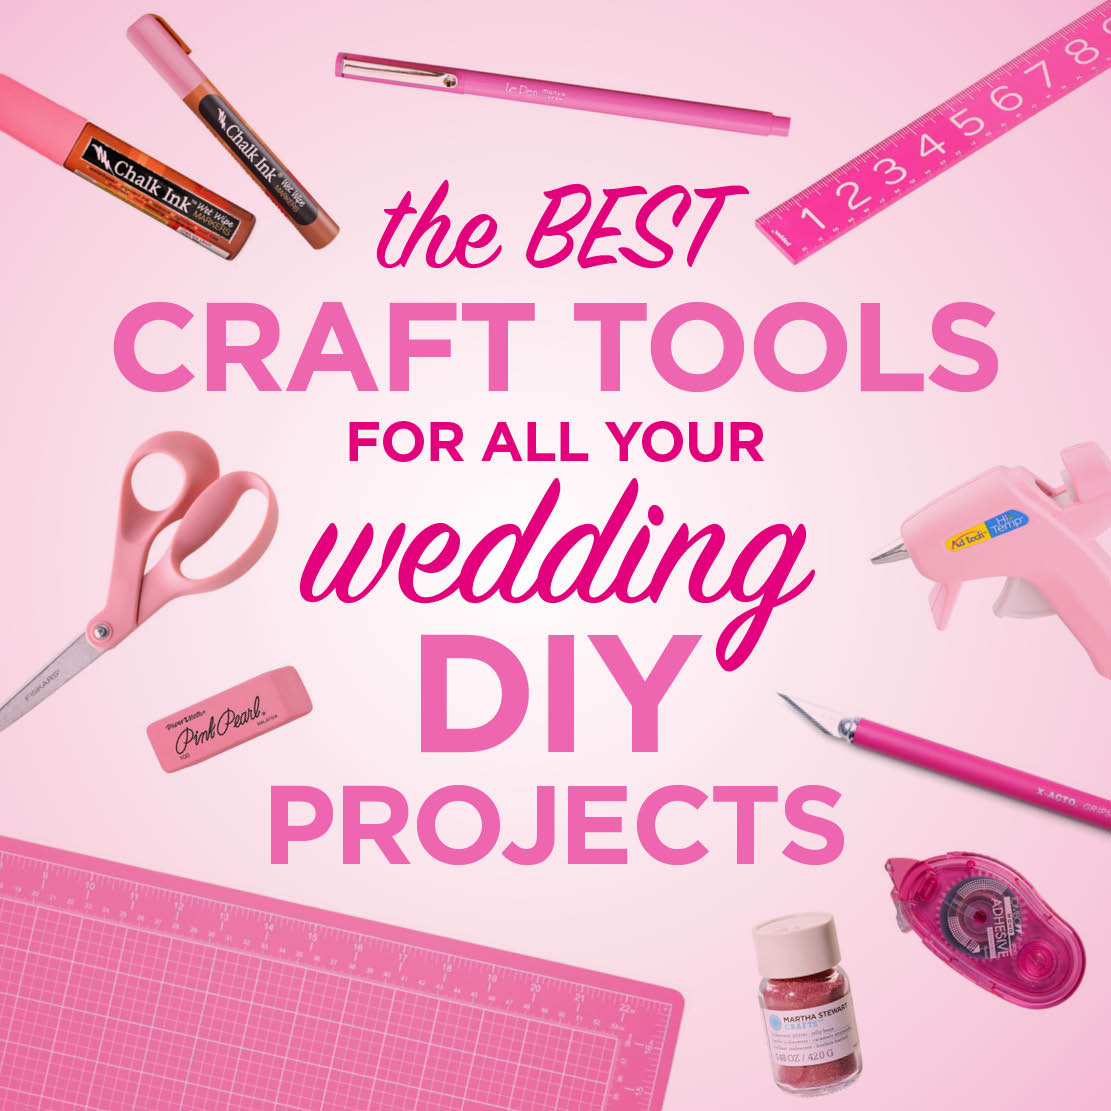 Tools For Diy Projects The Craft Tools Youll Need For Your Diy Wedding The Budget